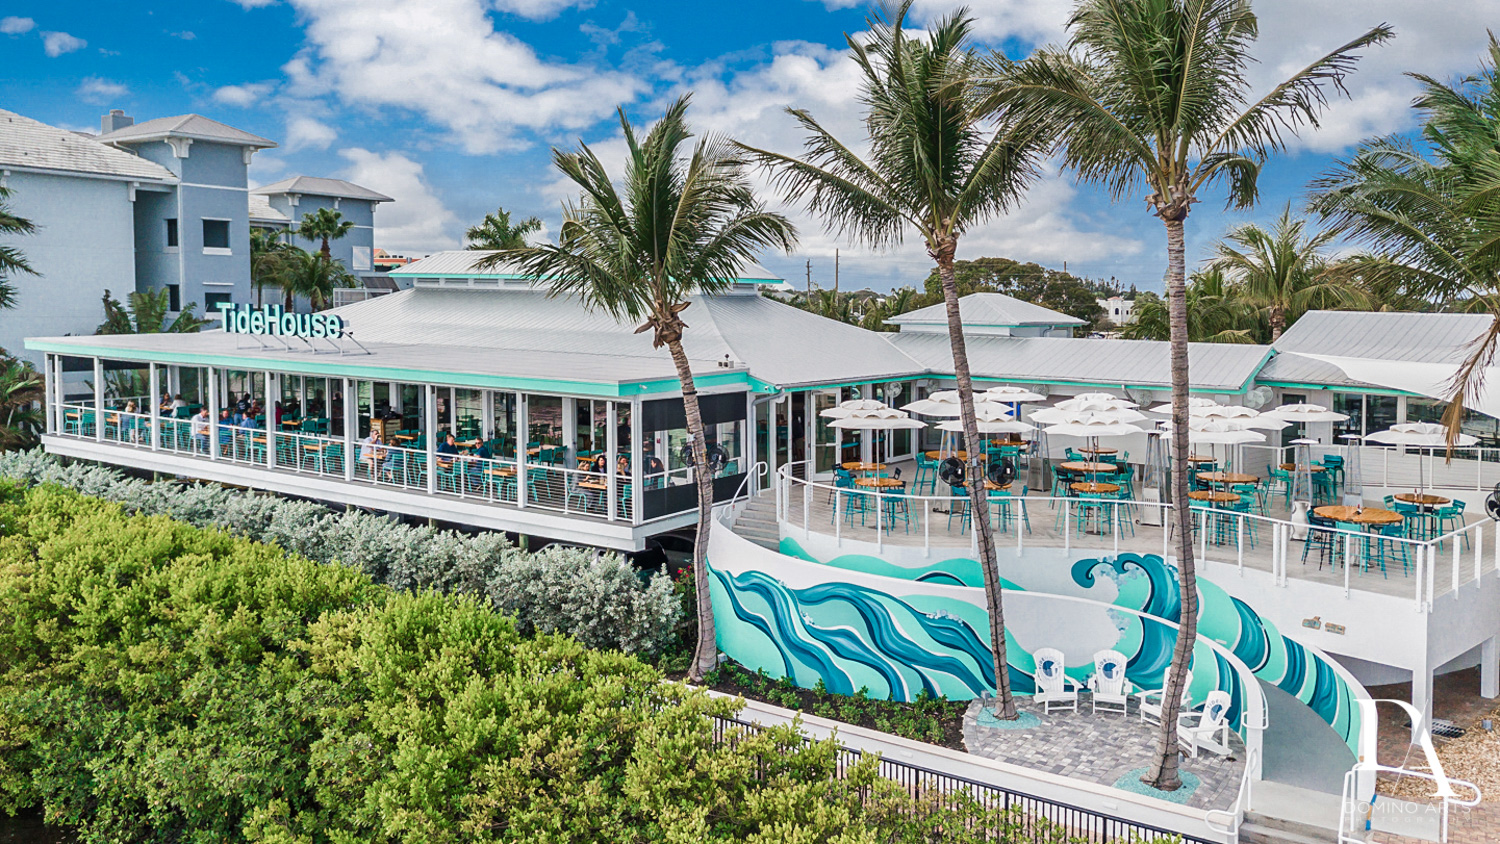 pools with best view AT Harborage Yacht Club & Marina by Domino Arts Photography